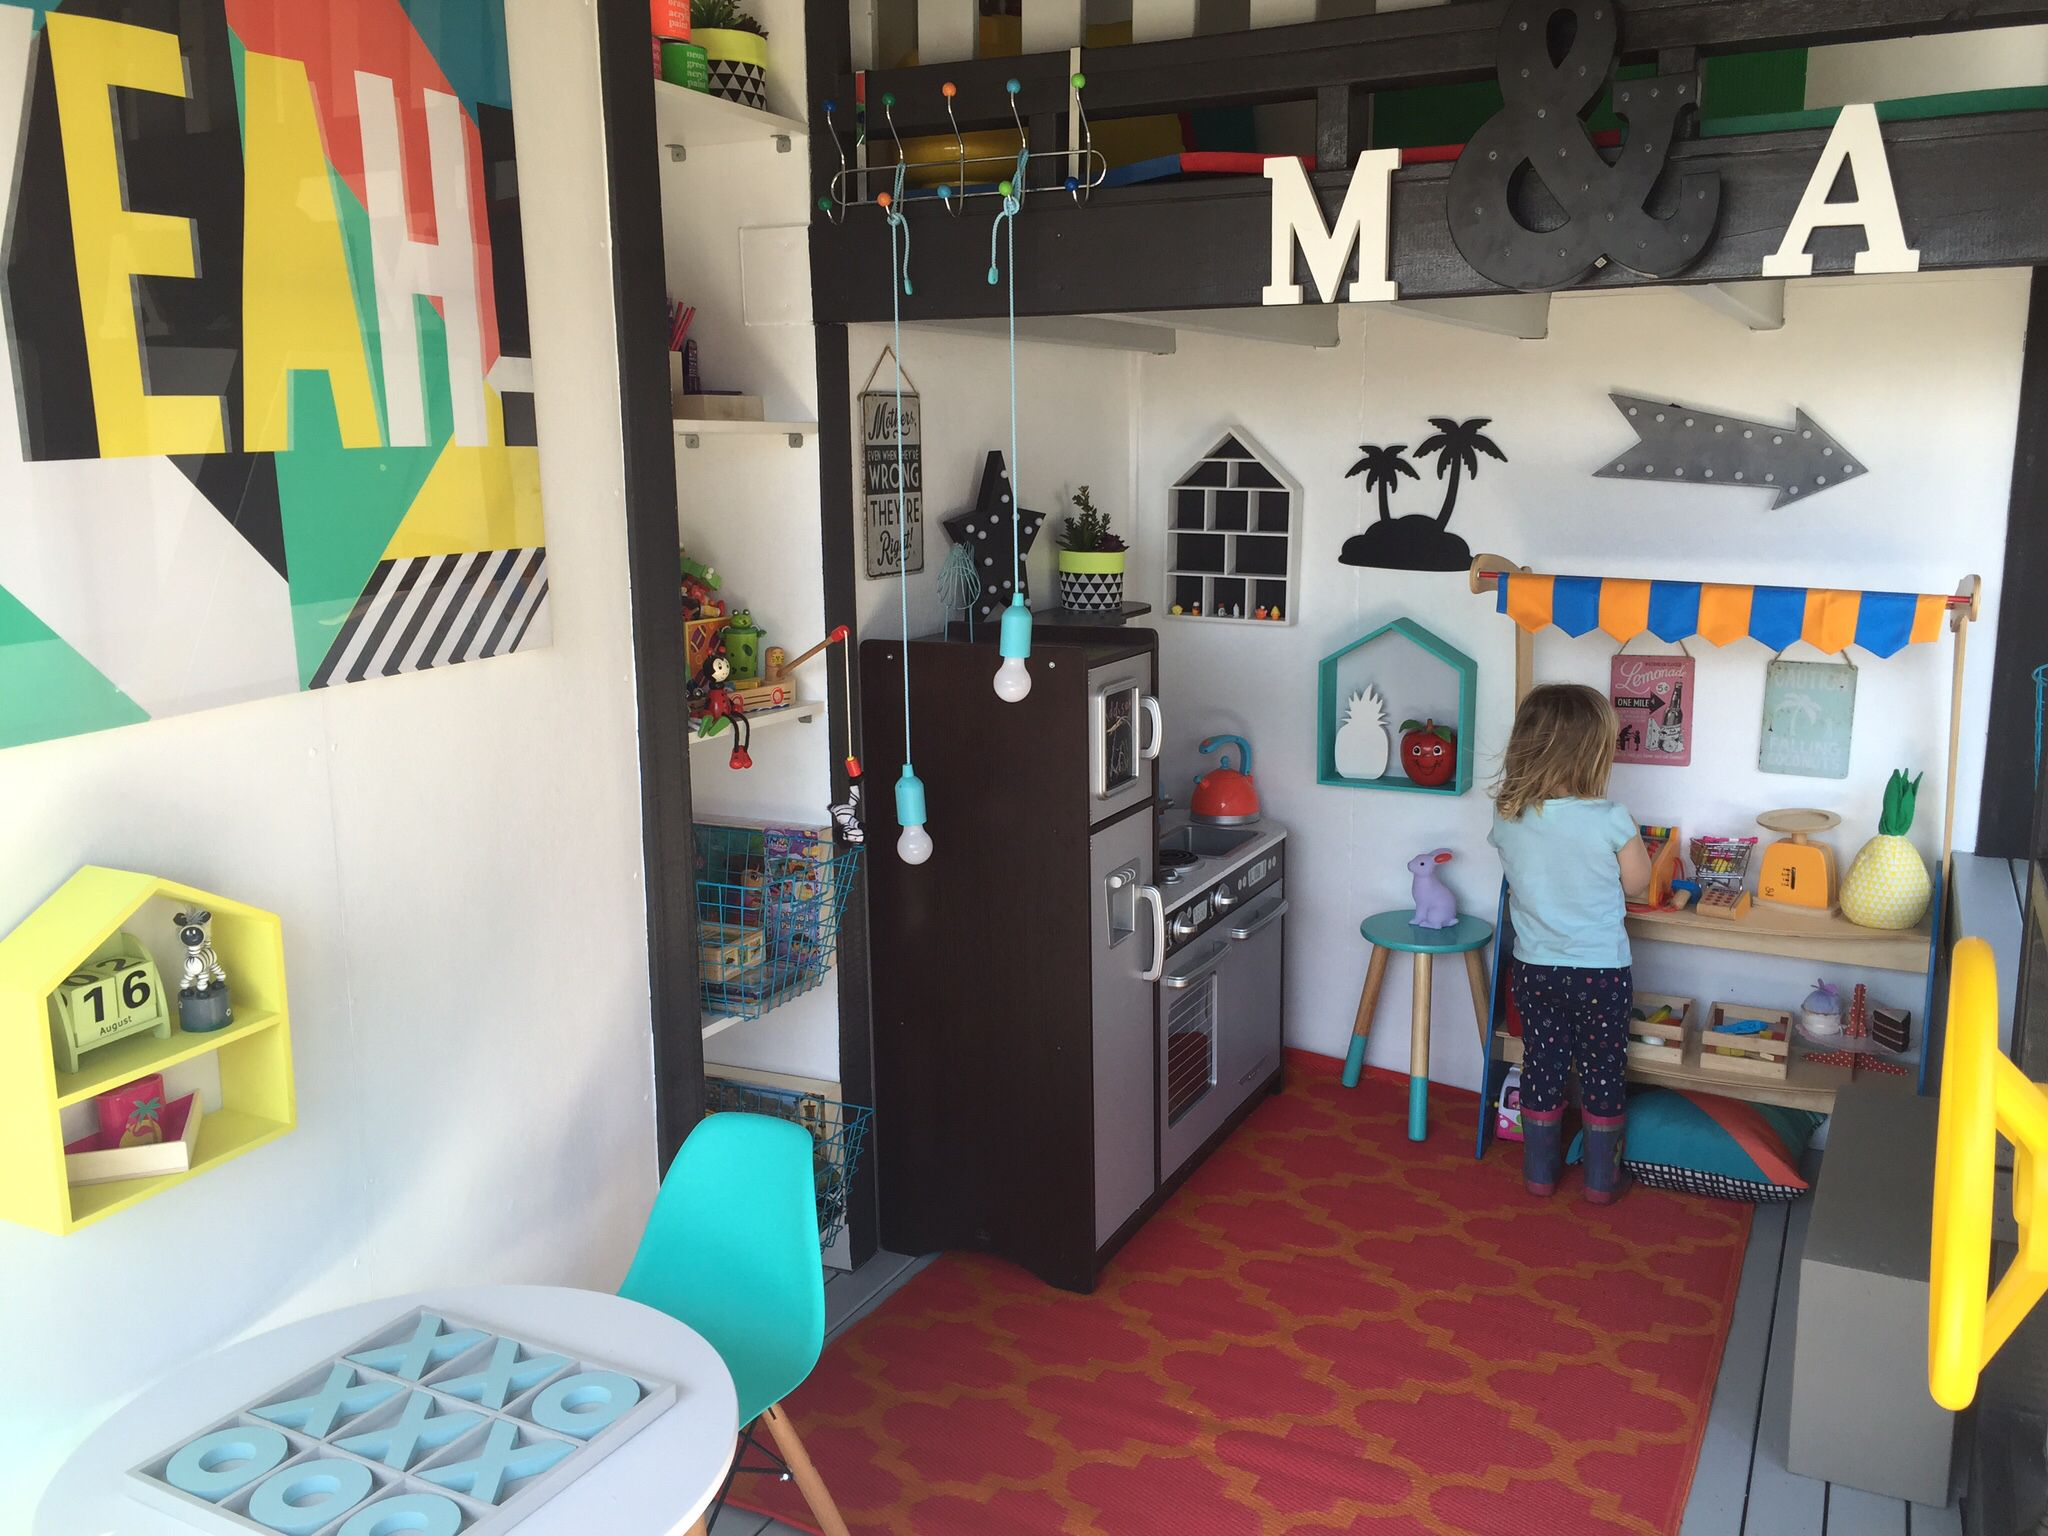 Kids cubby house interior Got to love Kmart